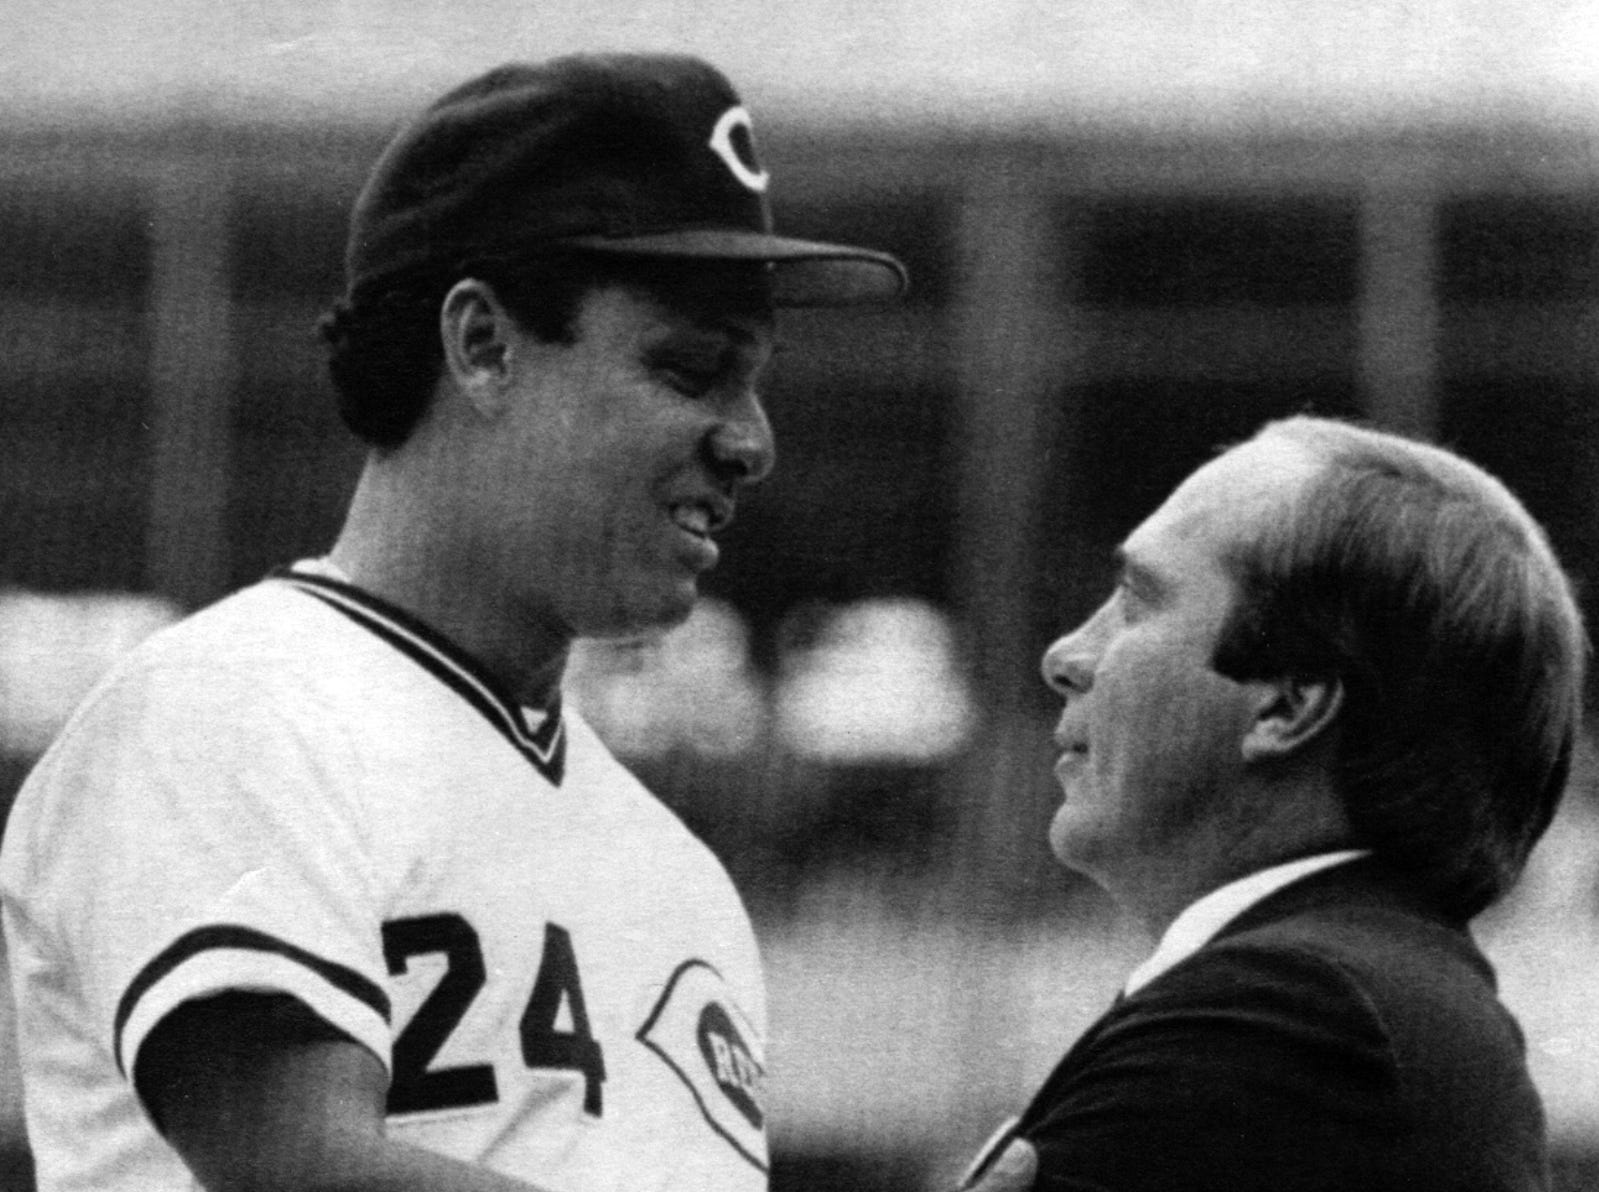 SEPTEMBER 21, 1986: Cincinnati Reds player Tony Perez, 24, is greeted by former teammate Johnny Bench during ceremonies honoring Perez at Riverfront Stadium Sunday afternoon before their game with the Los Angeles Dodgers, Perez, originally from Cuba, now living in Santurce, Puerto Rico, is retiring at the end of the 1986 season. AP Photo/Al Behrman scanned June 10, 2013